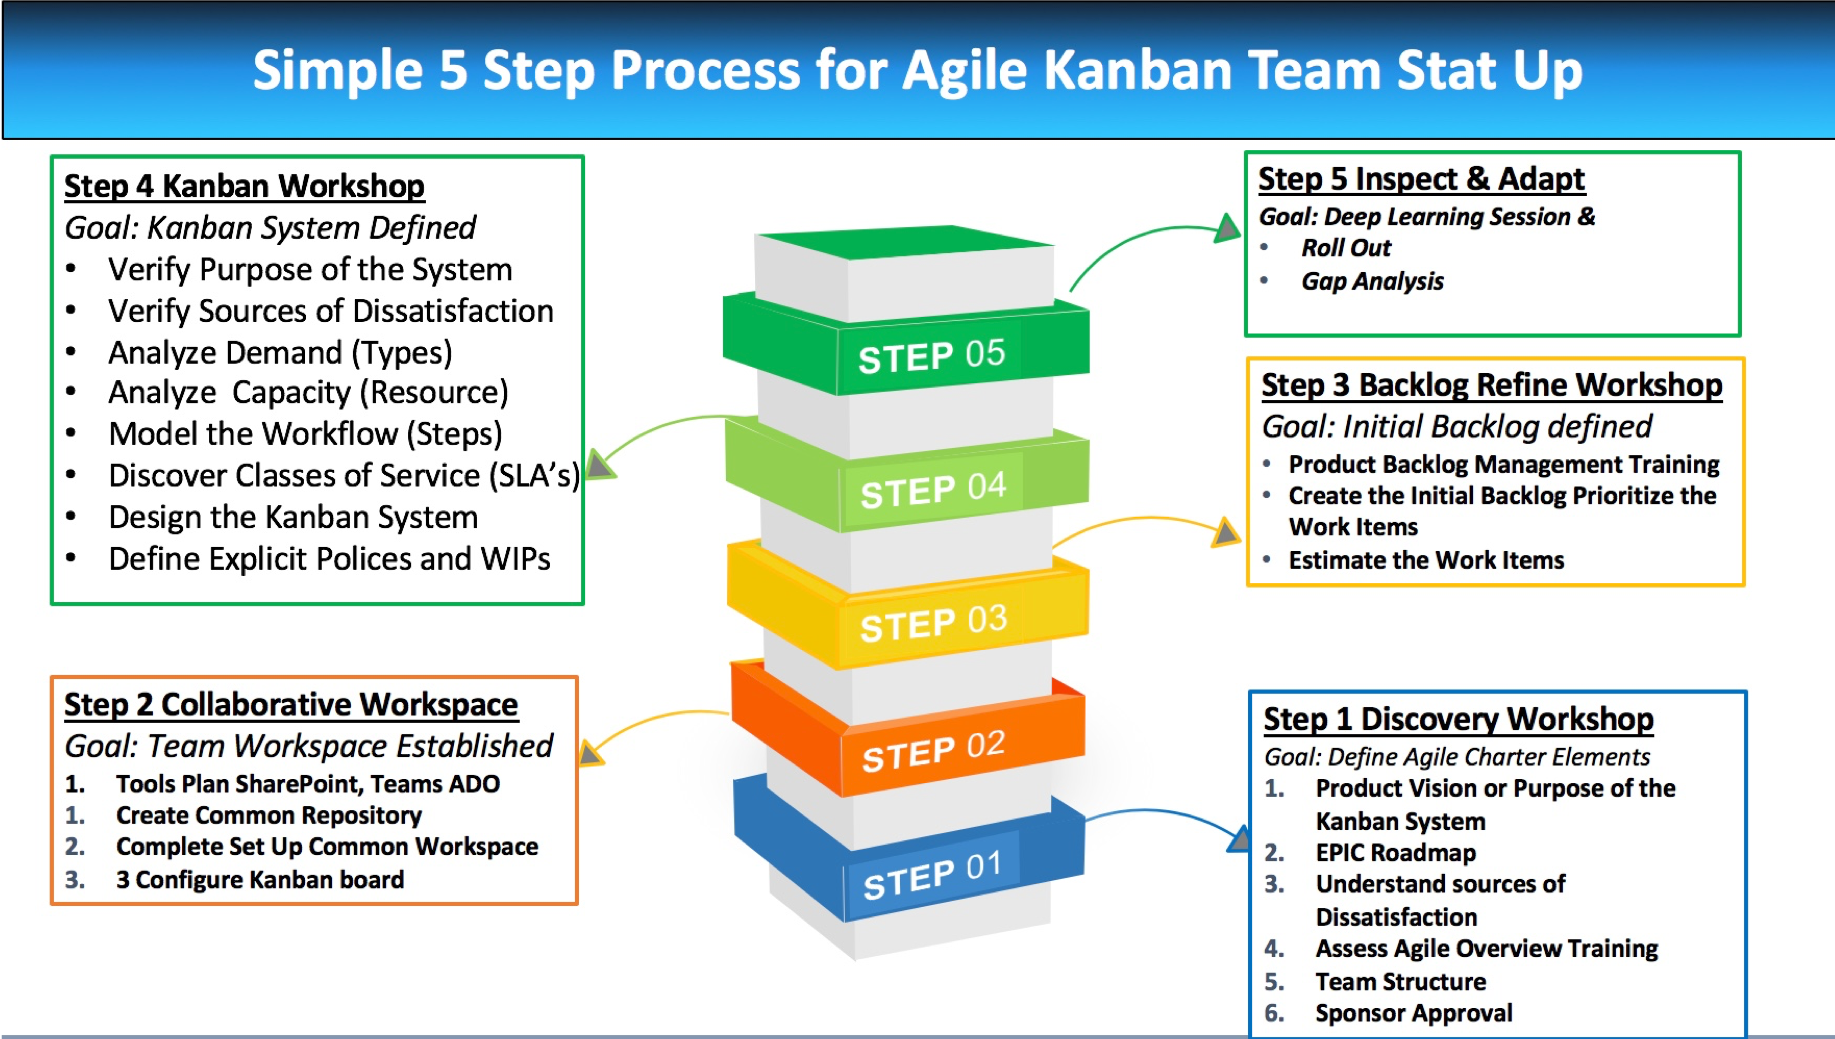 Simple 5 Step Process for Agile Kanban Team Start Up